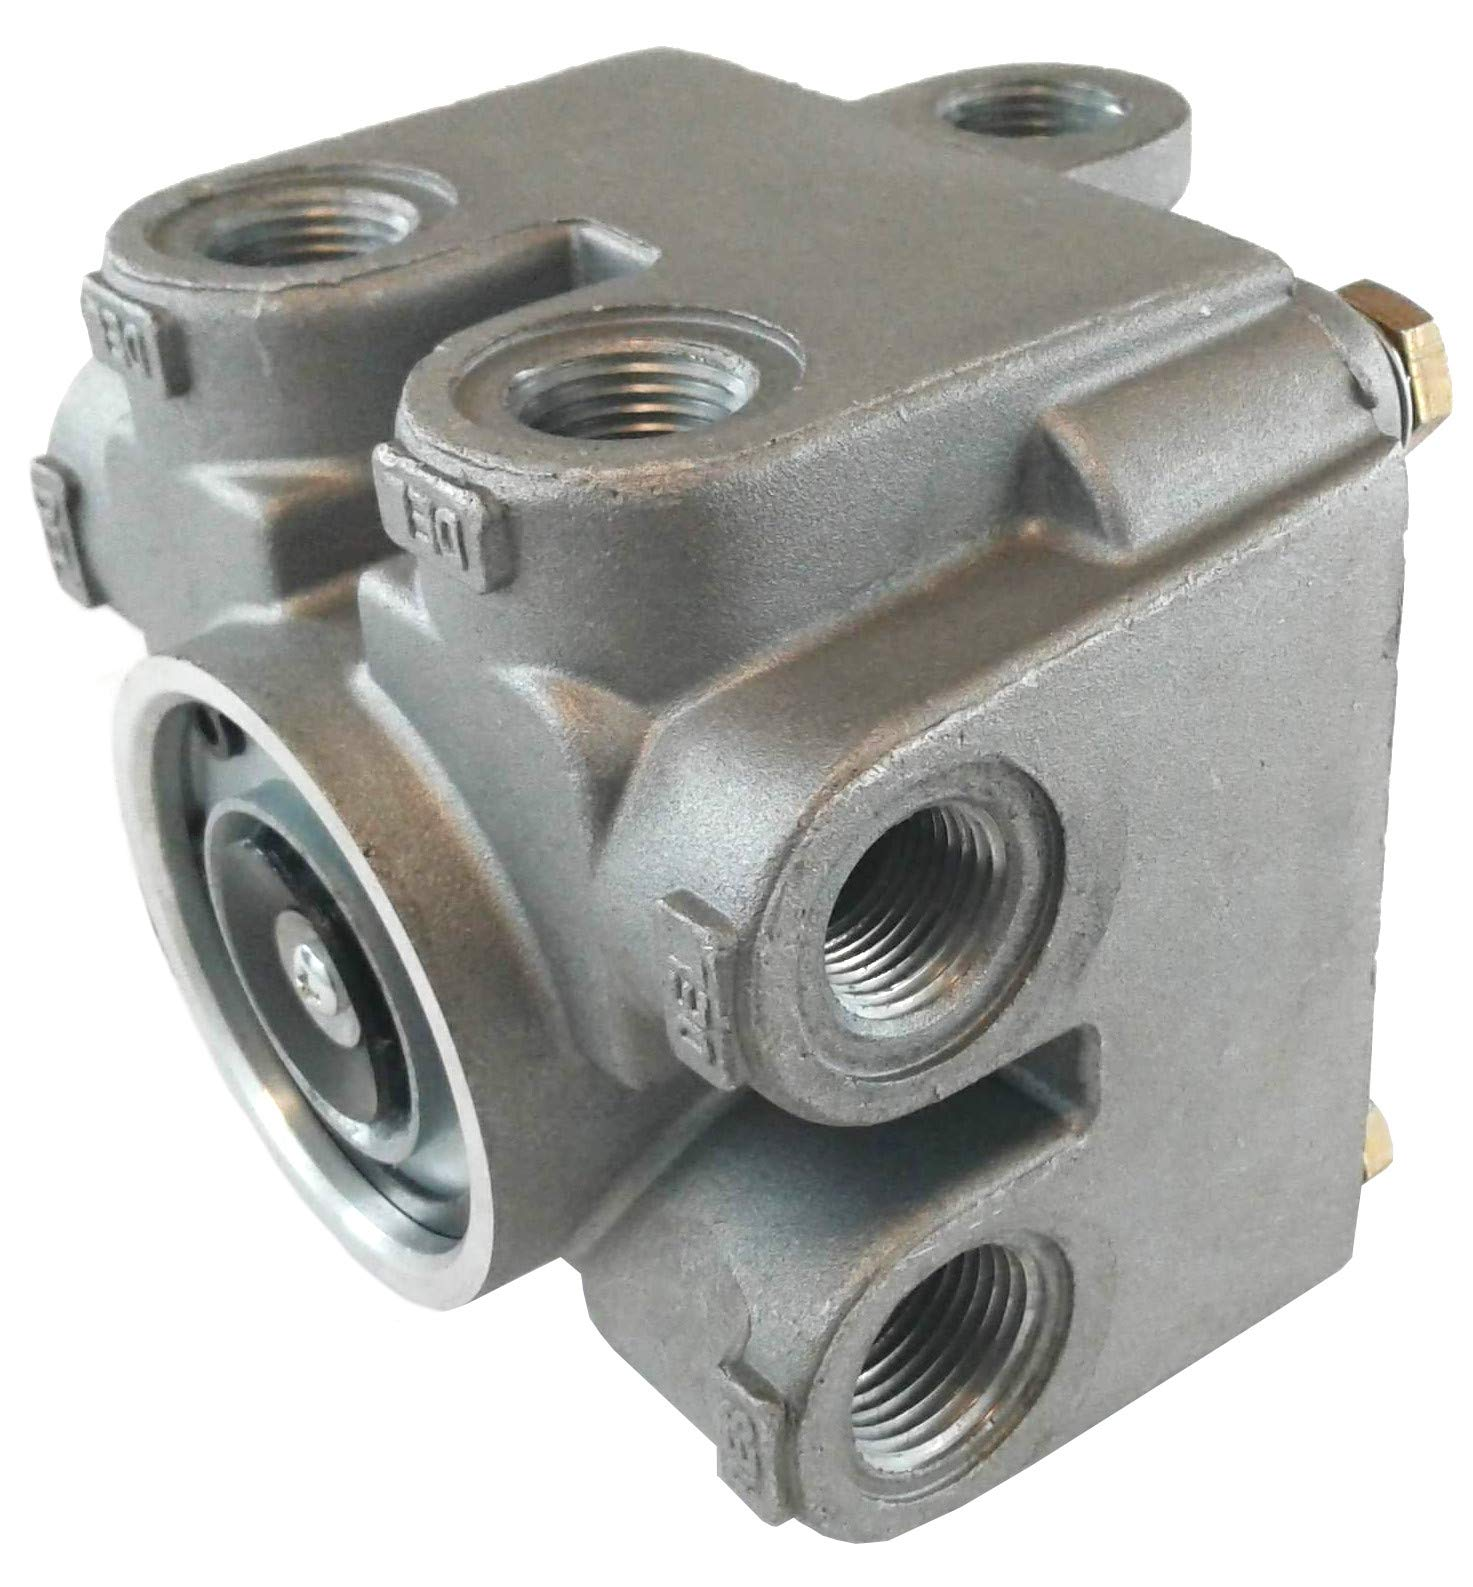 4 Port Tractor/Trailer Single Control Air Brake Relay Valve - 7.0 PSI for Heavy Duty Big Rigs